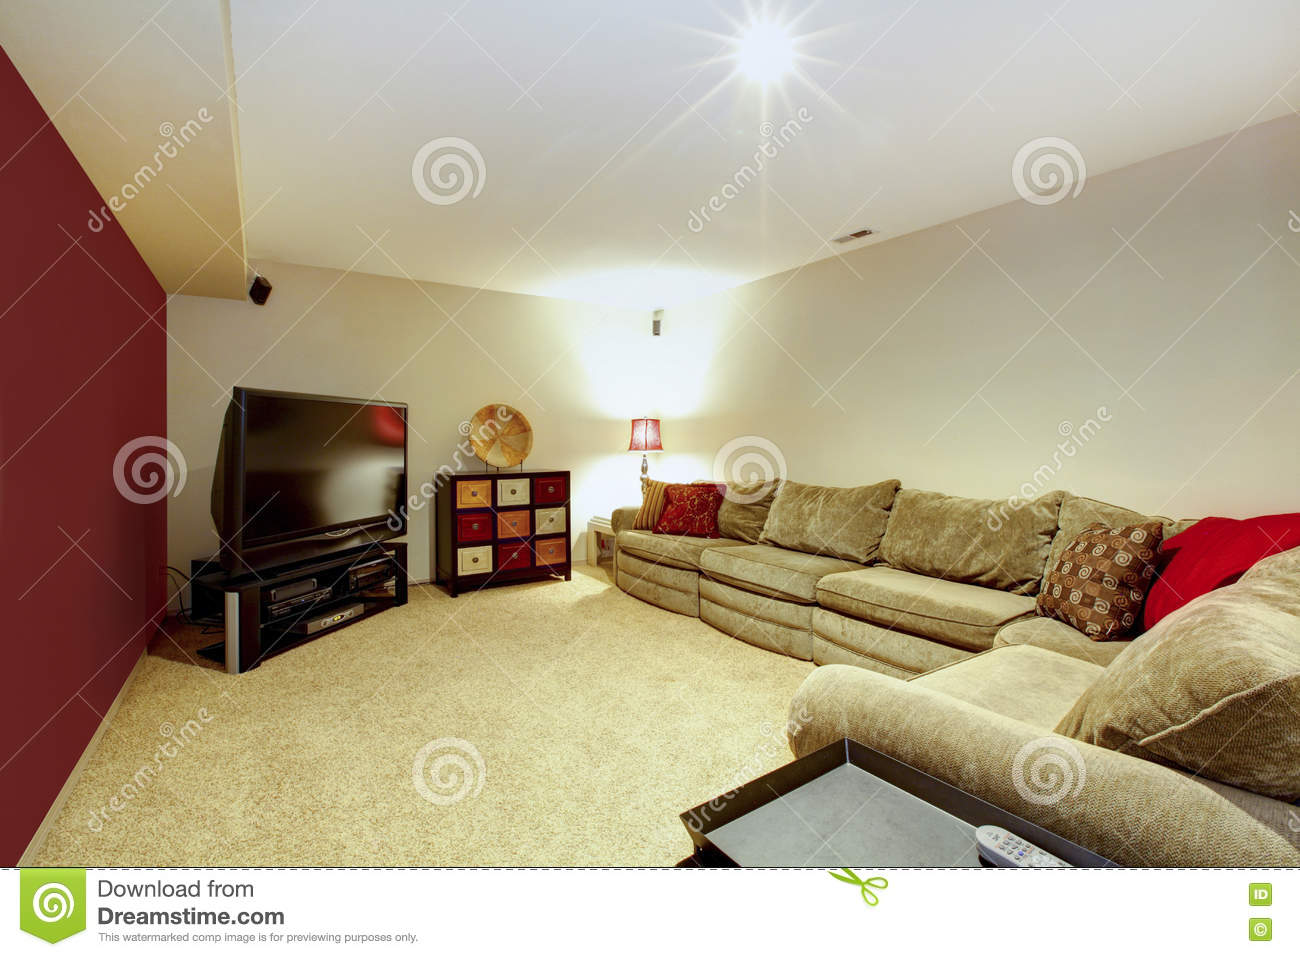 living room interior with beige sofa, carpet floor and red wall